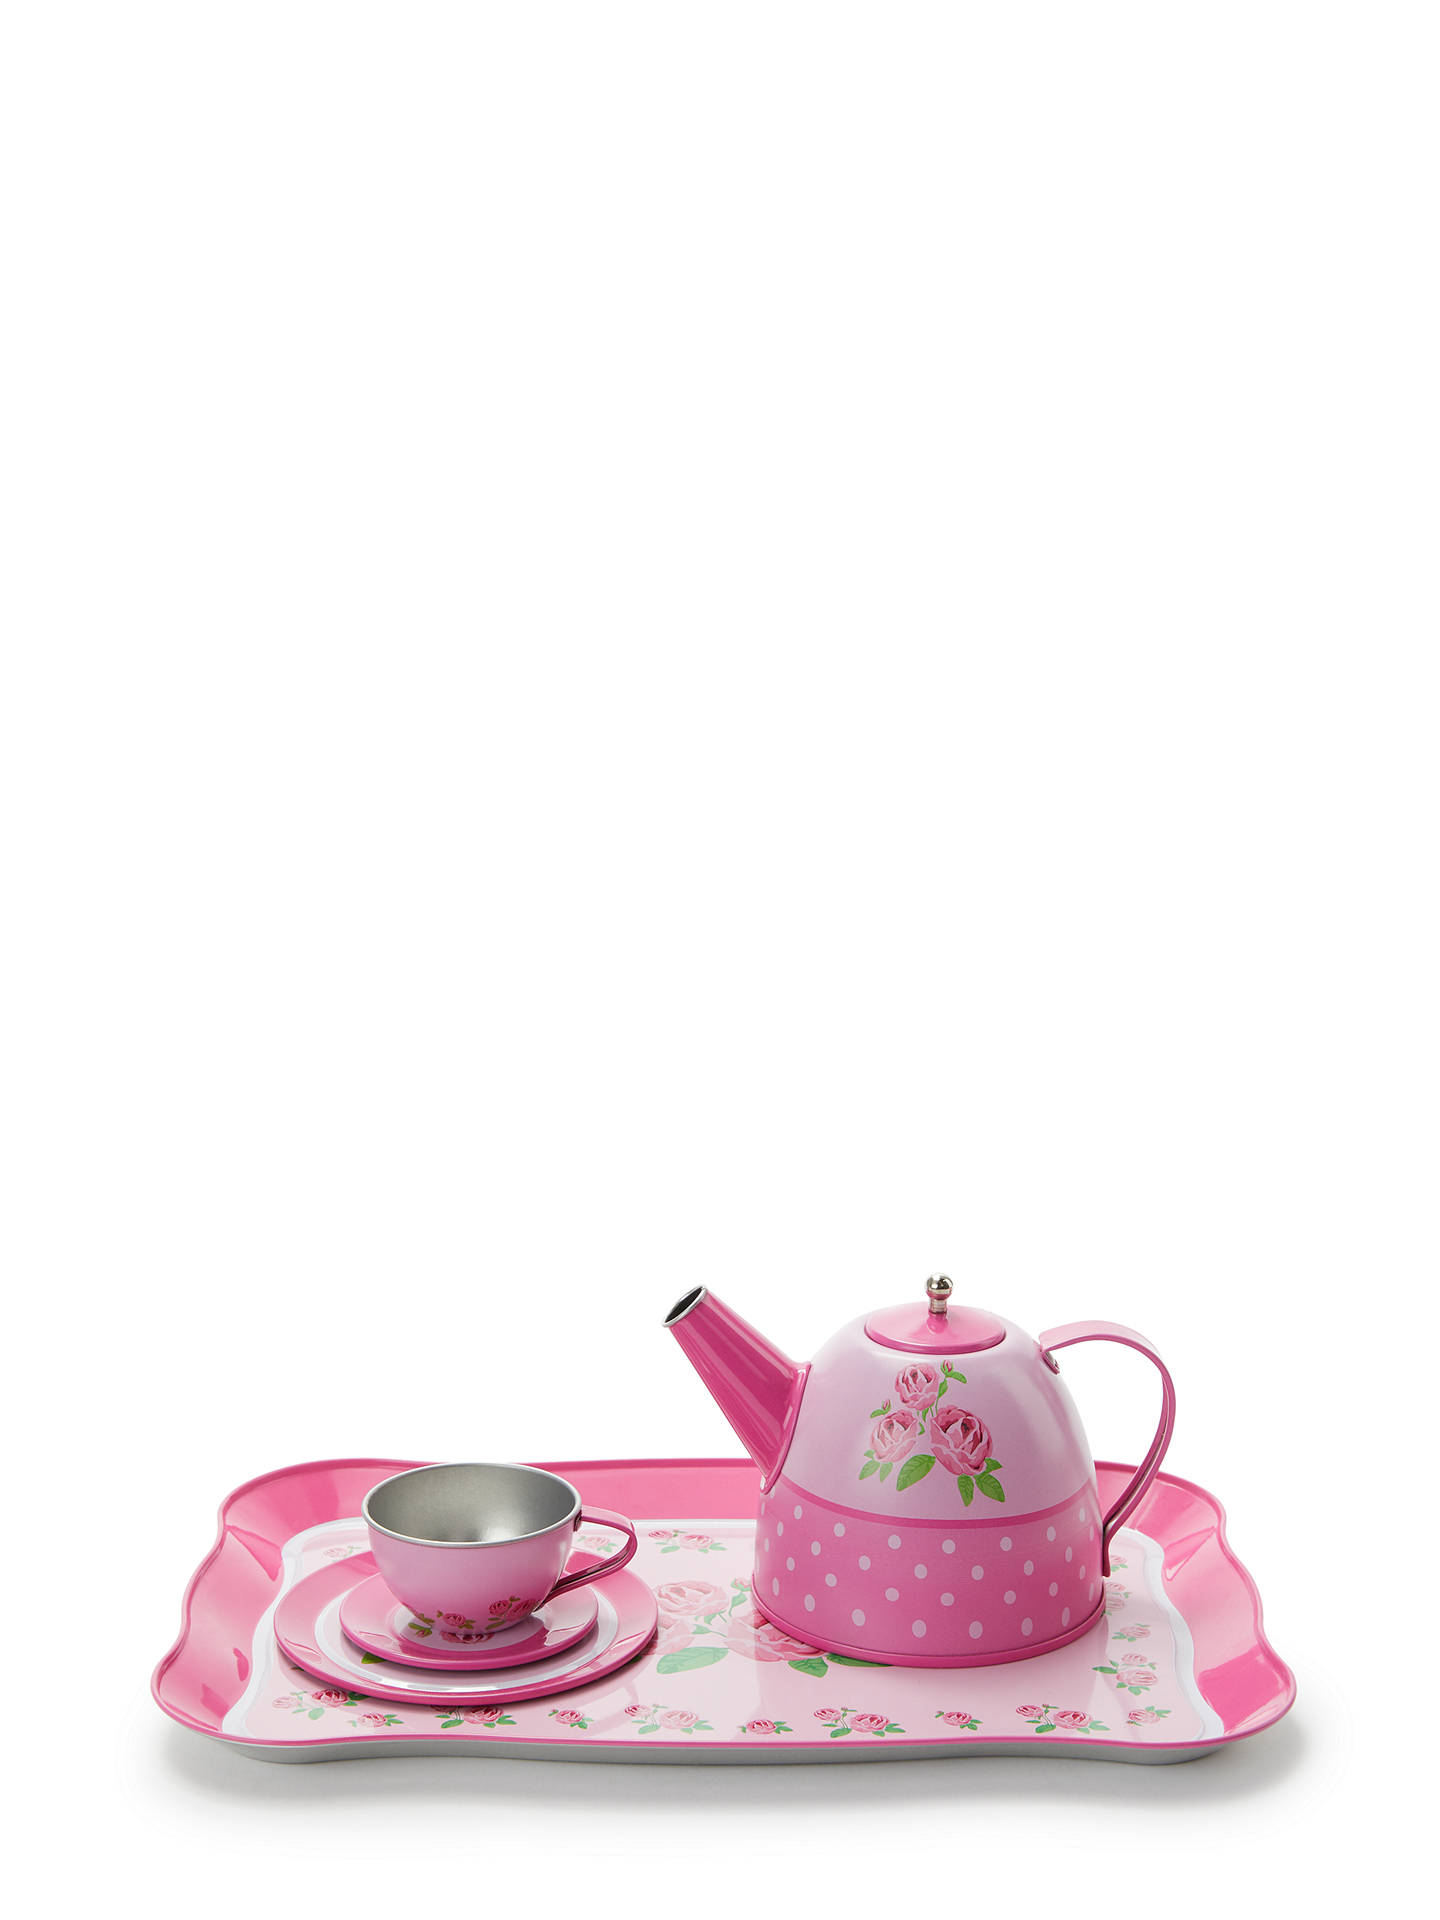 BuyJohn Lewis & Partners Toy Rose Tin Tea Set Online at johnlewis.com